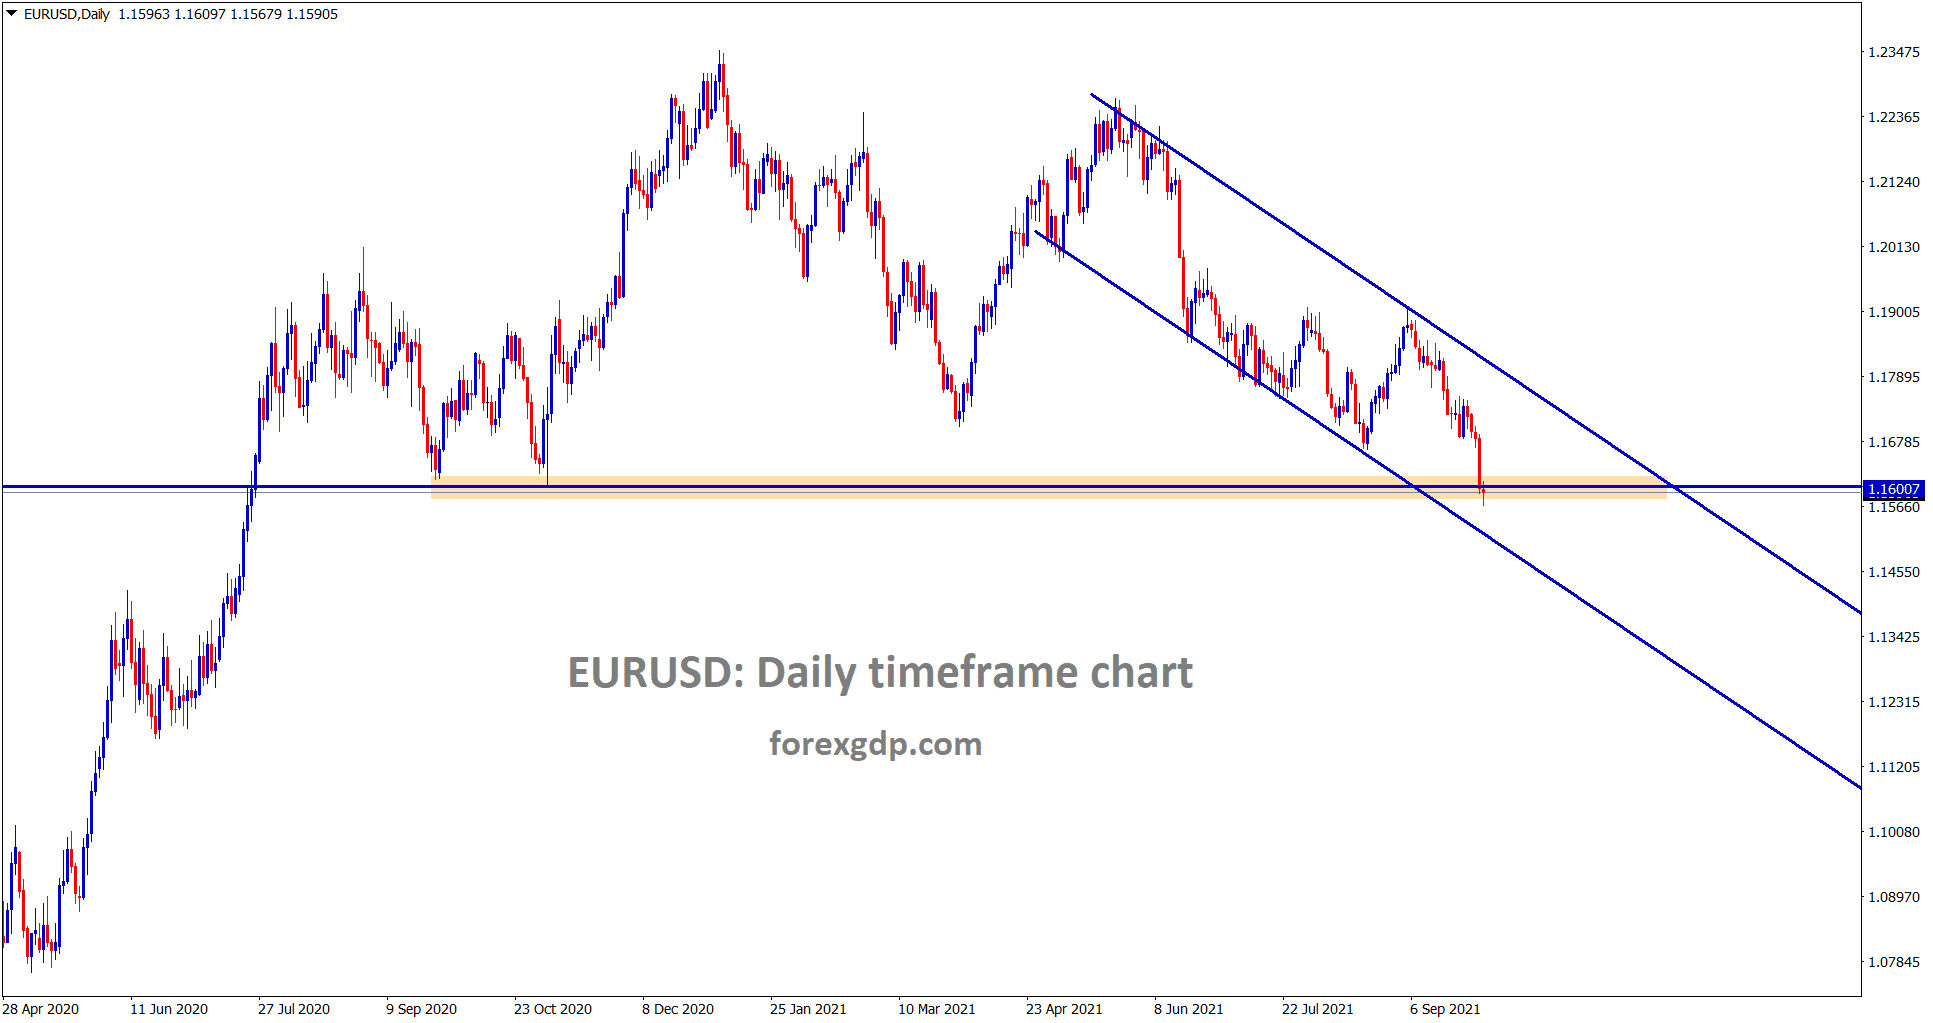 EURUSD is still standing at the important support area